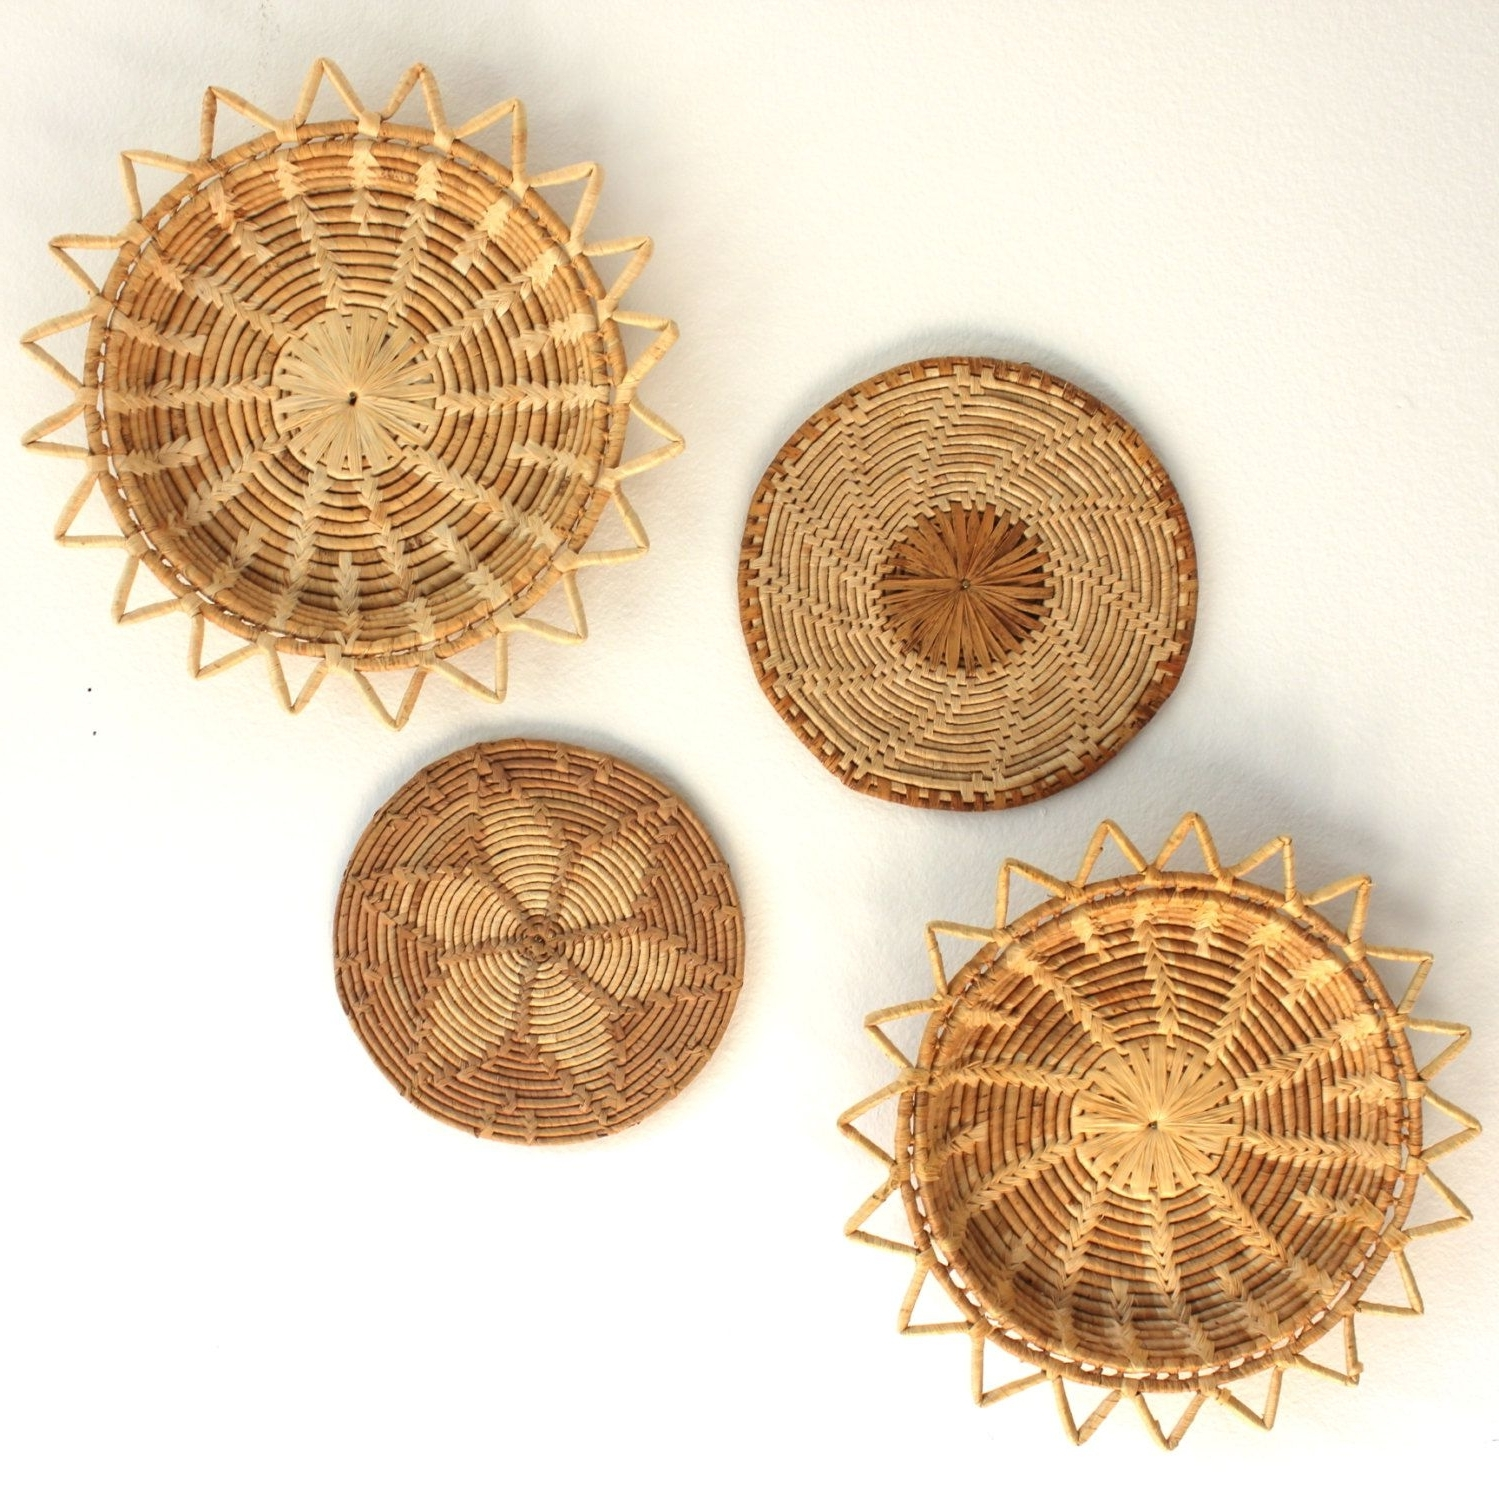 Pinterest Pertaining To Woven Basket Wall Art (View 10 of 20)